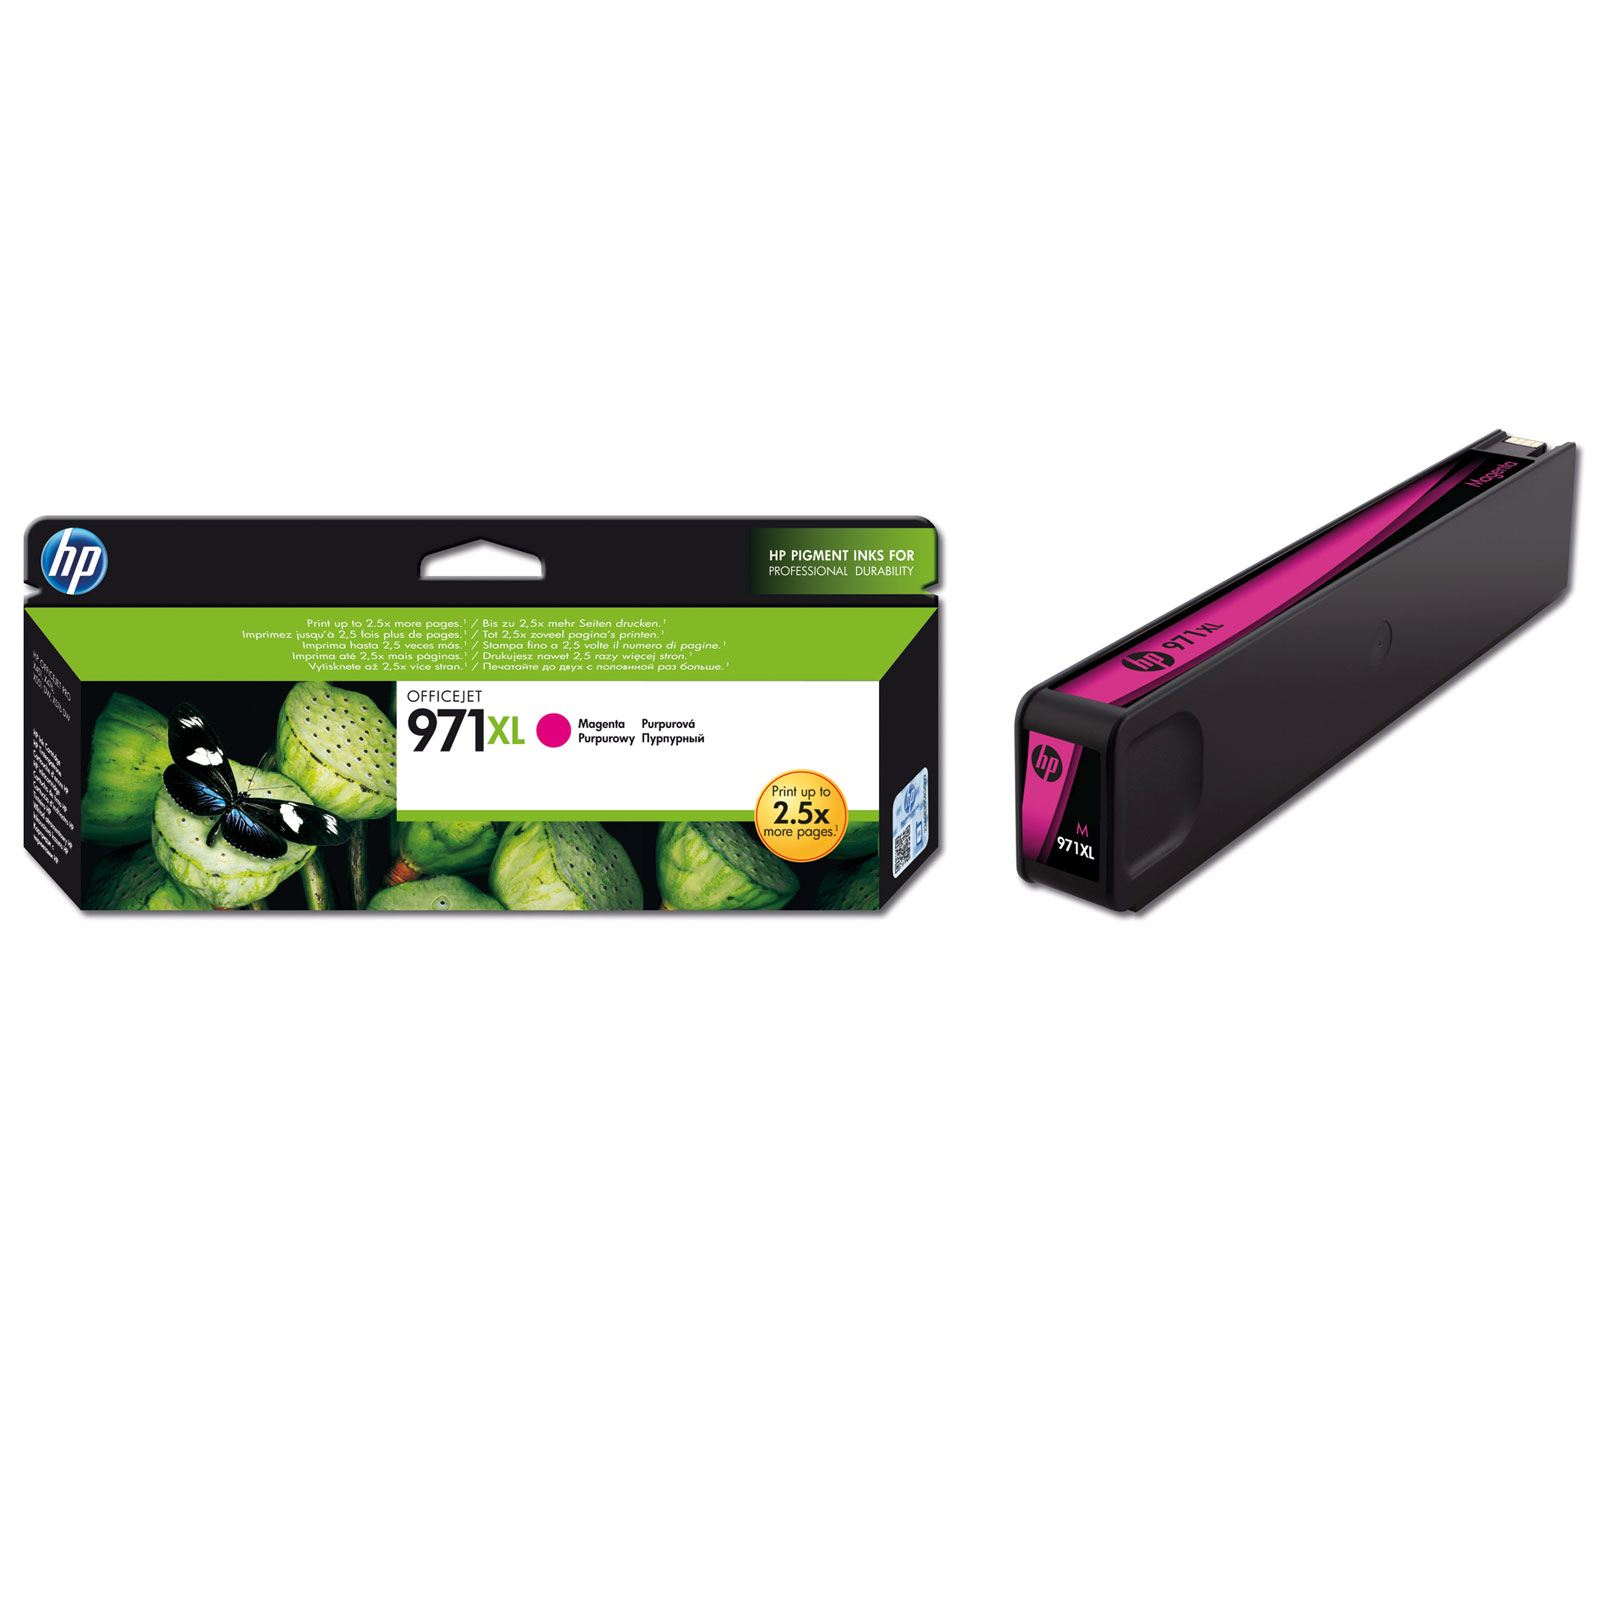 HP 971XL magenta high-cap ink cartridge Original HP